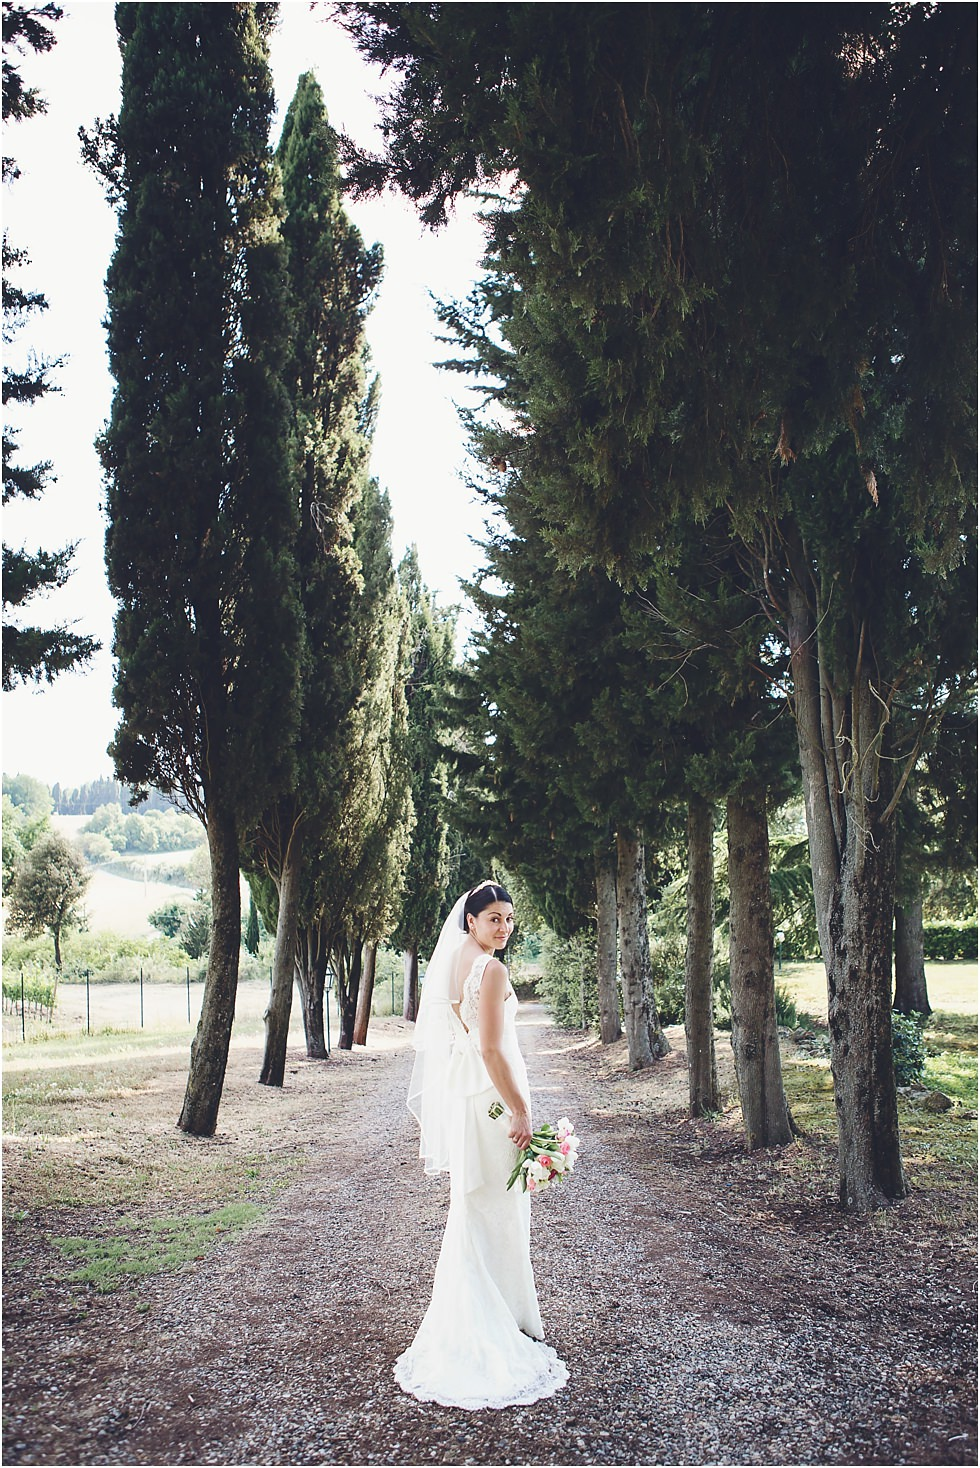 Cristina Rossi Photography Destination Wedding Italy_1291